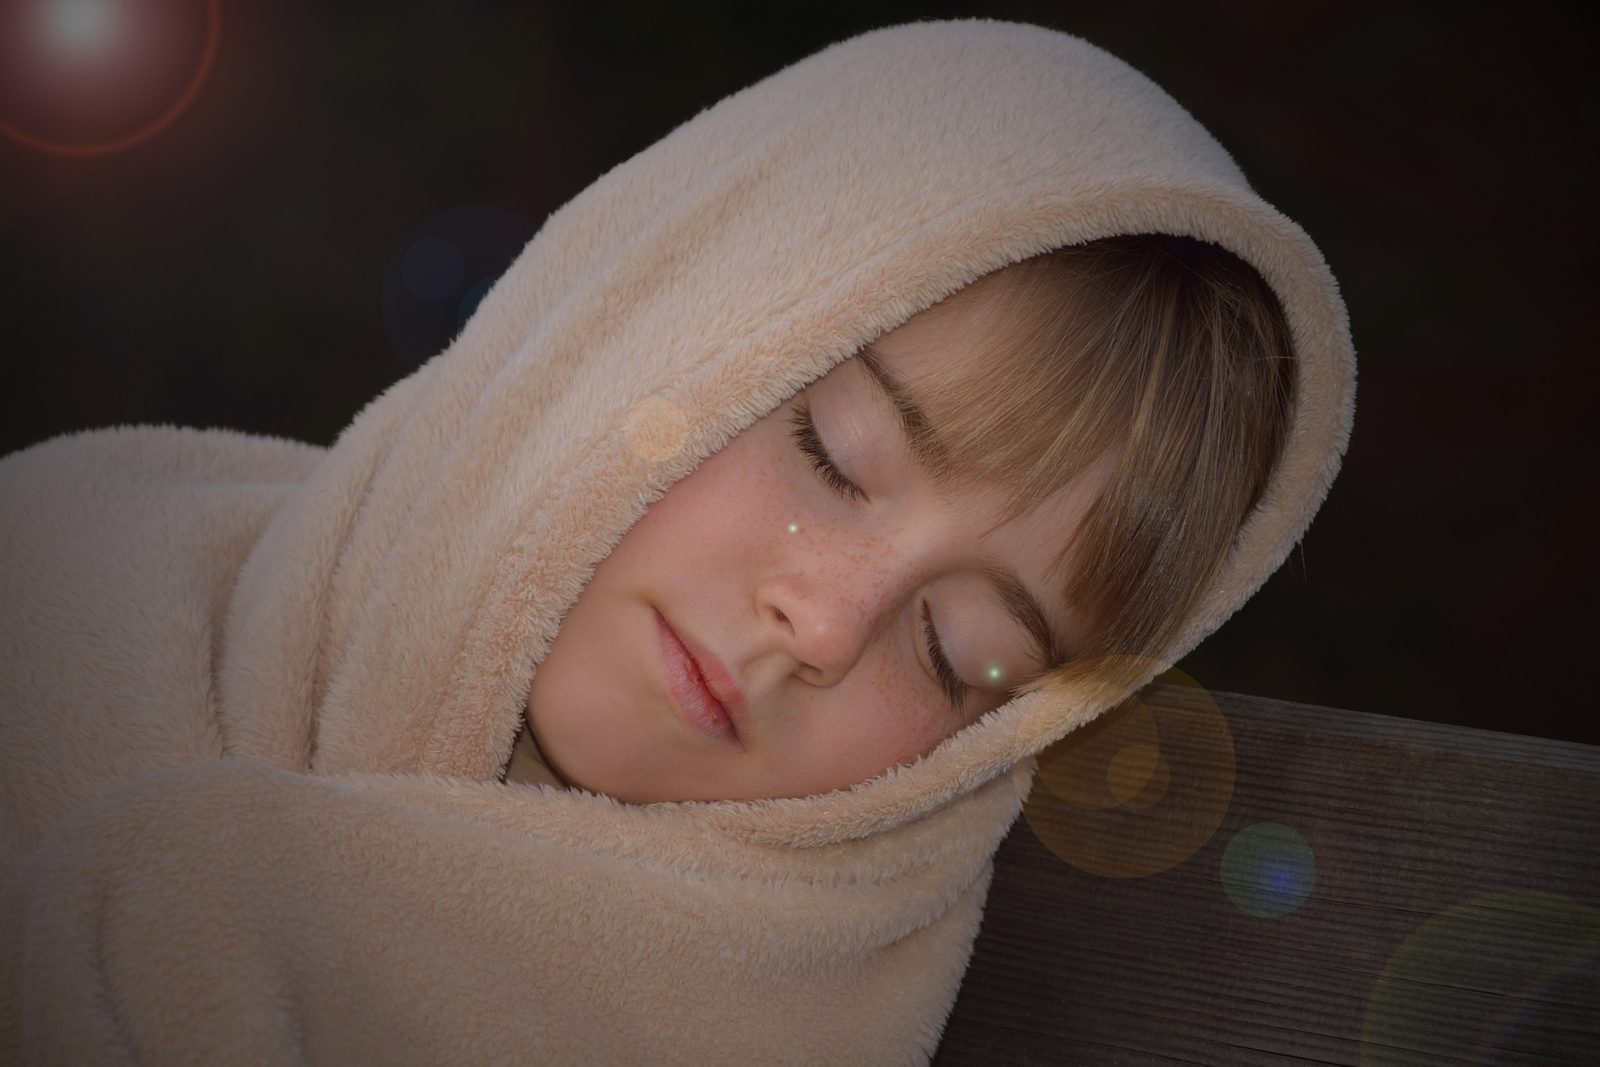 How to encourage positive sleeping patterns